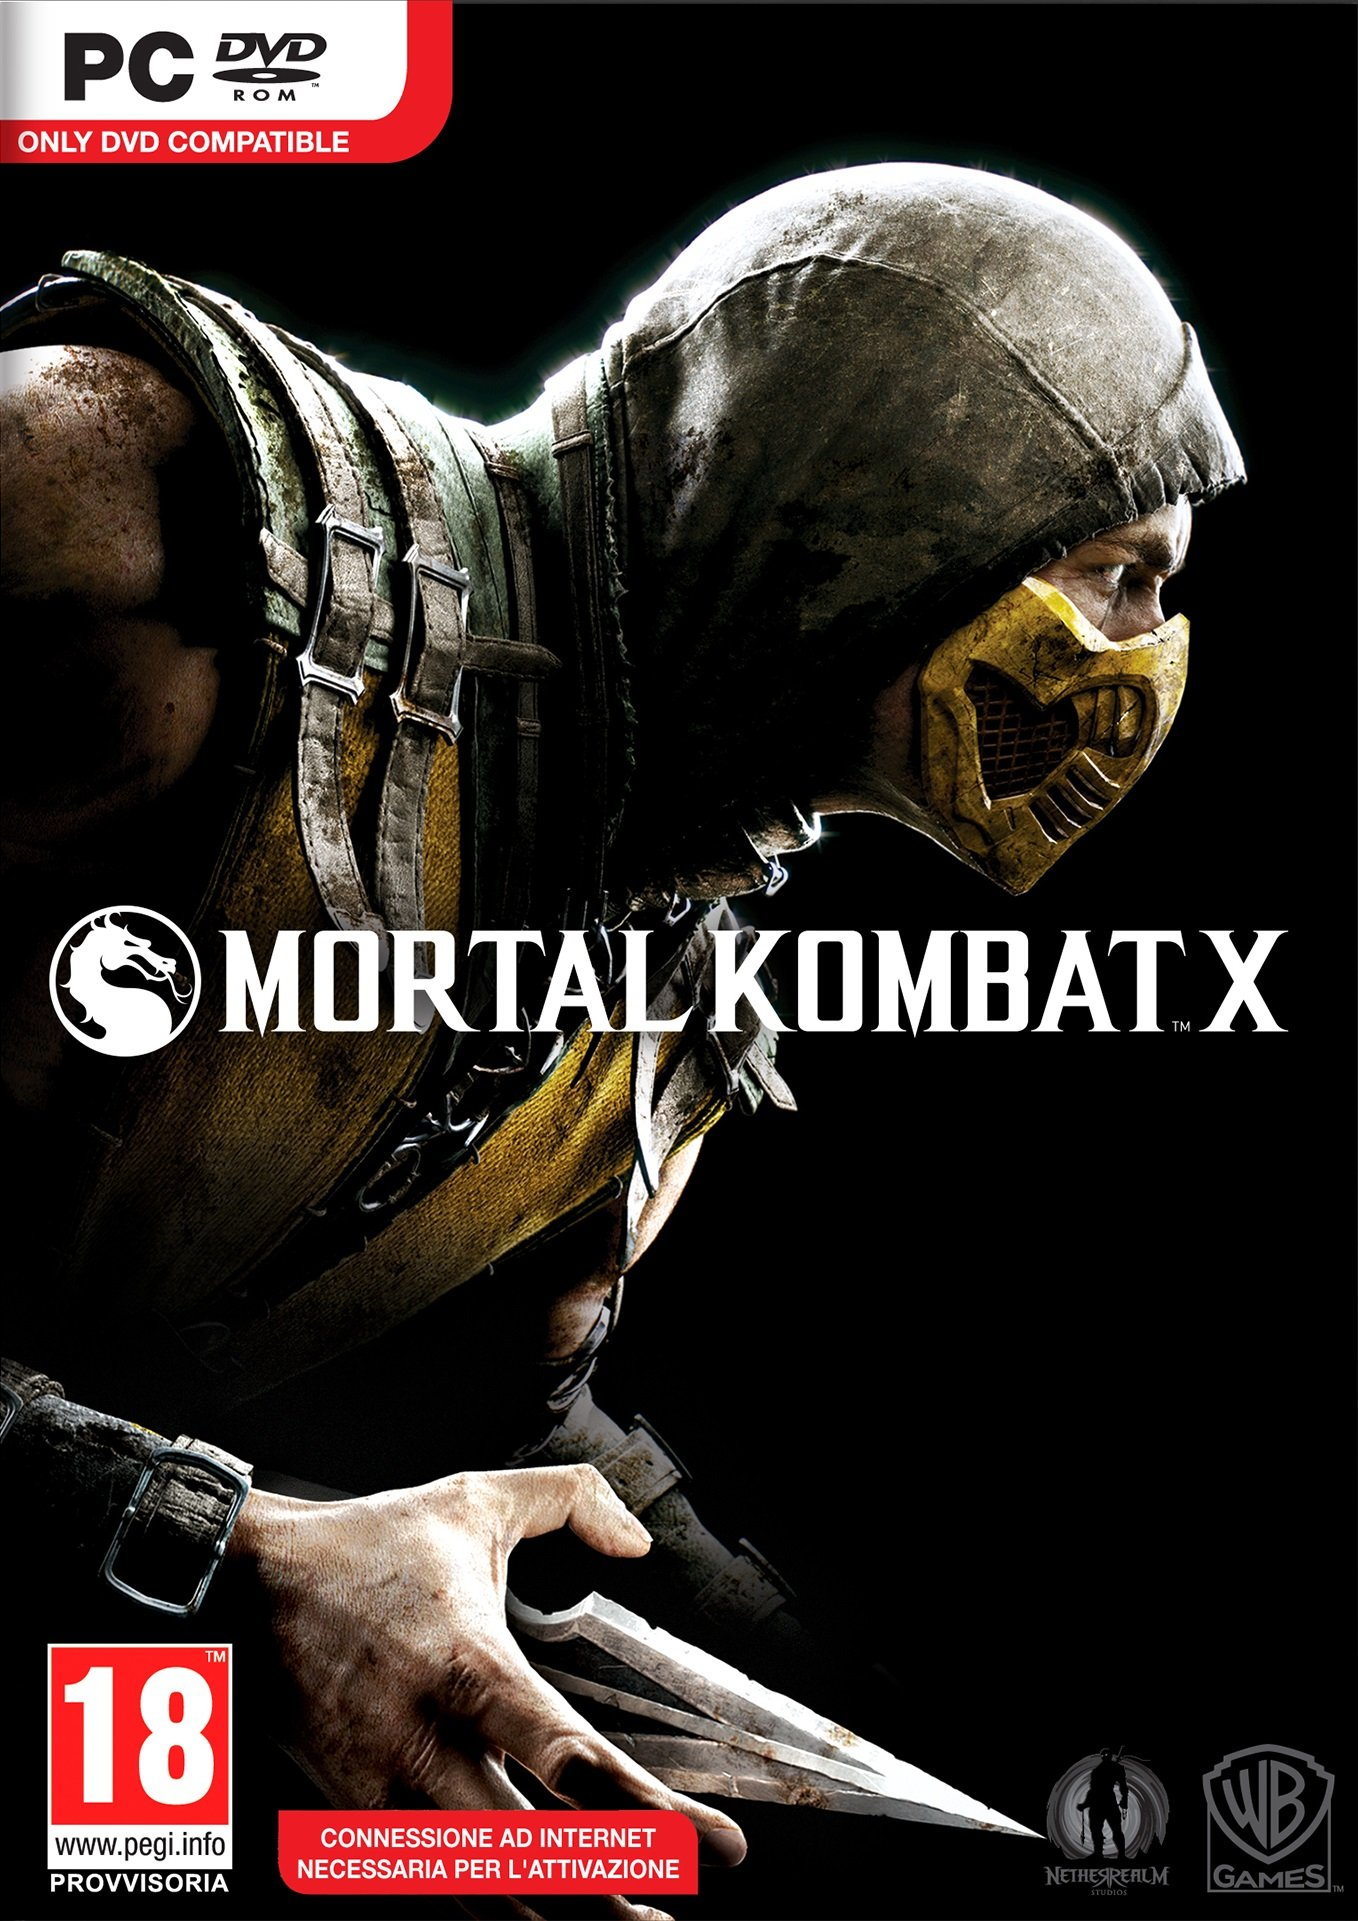 mortal kombat x pc dvd.jpg